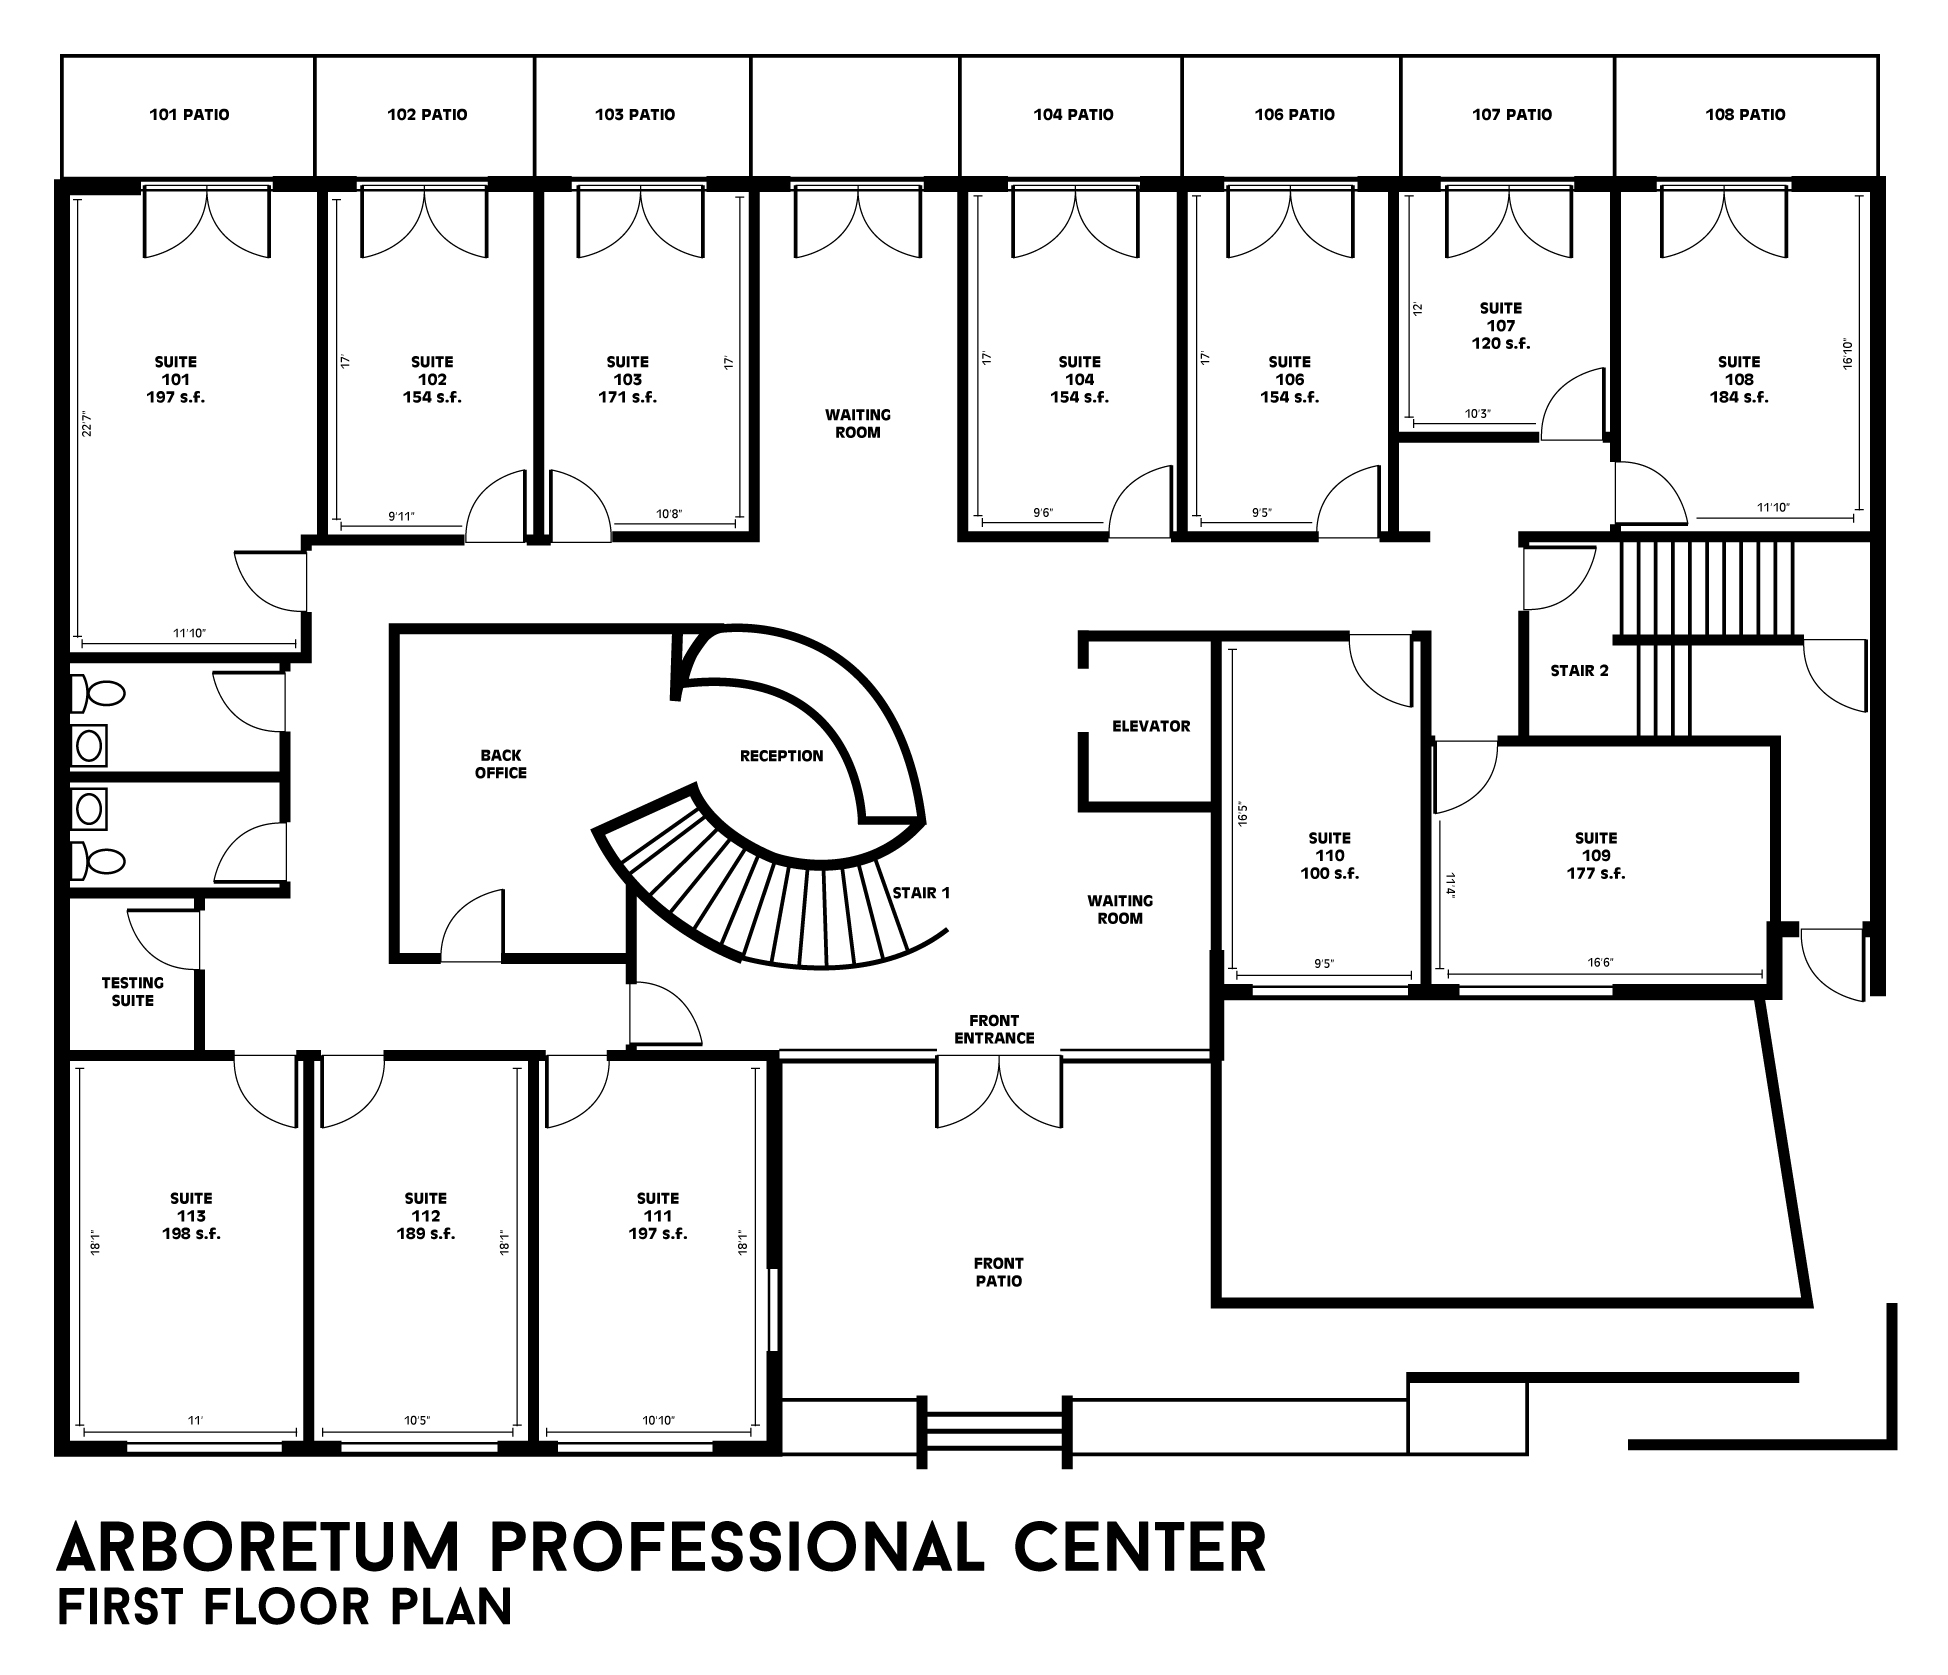 28 Building Floor Plans Arboretum Professional Free